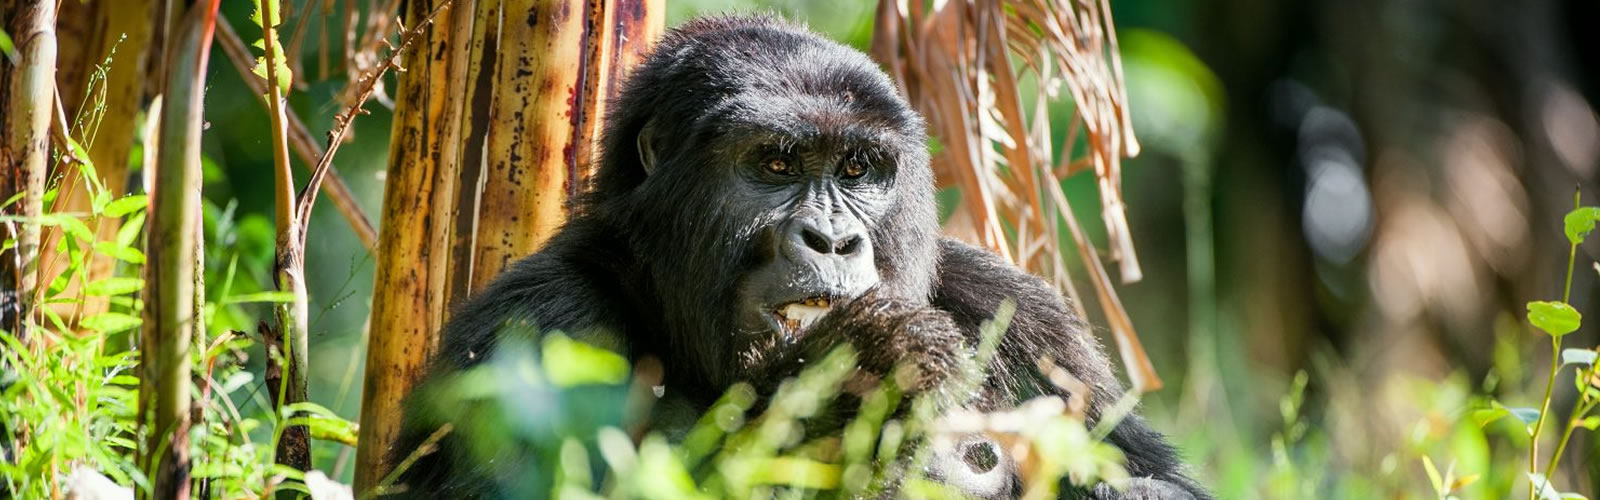 Gorillas and Primates